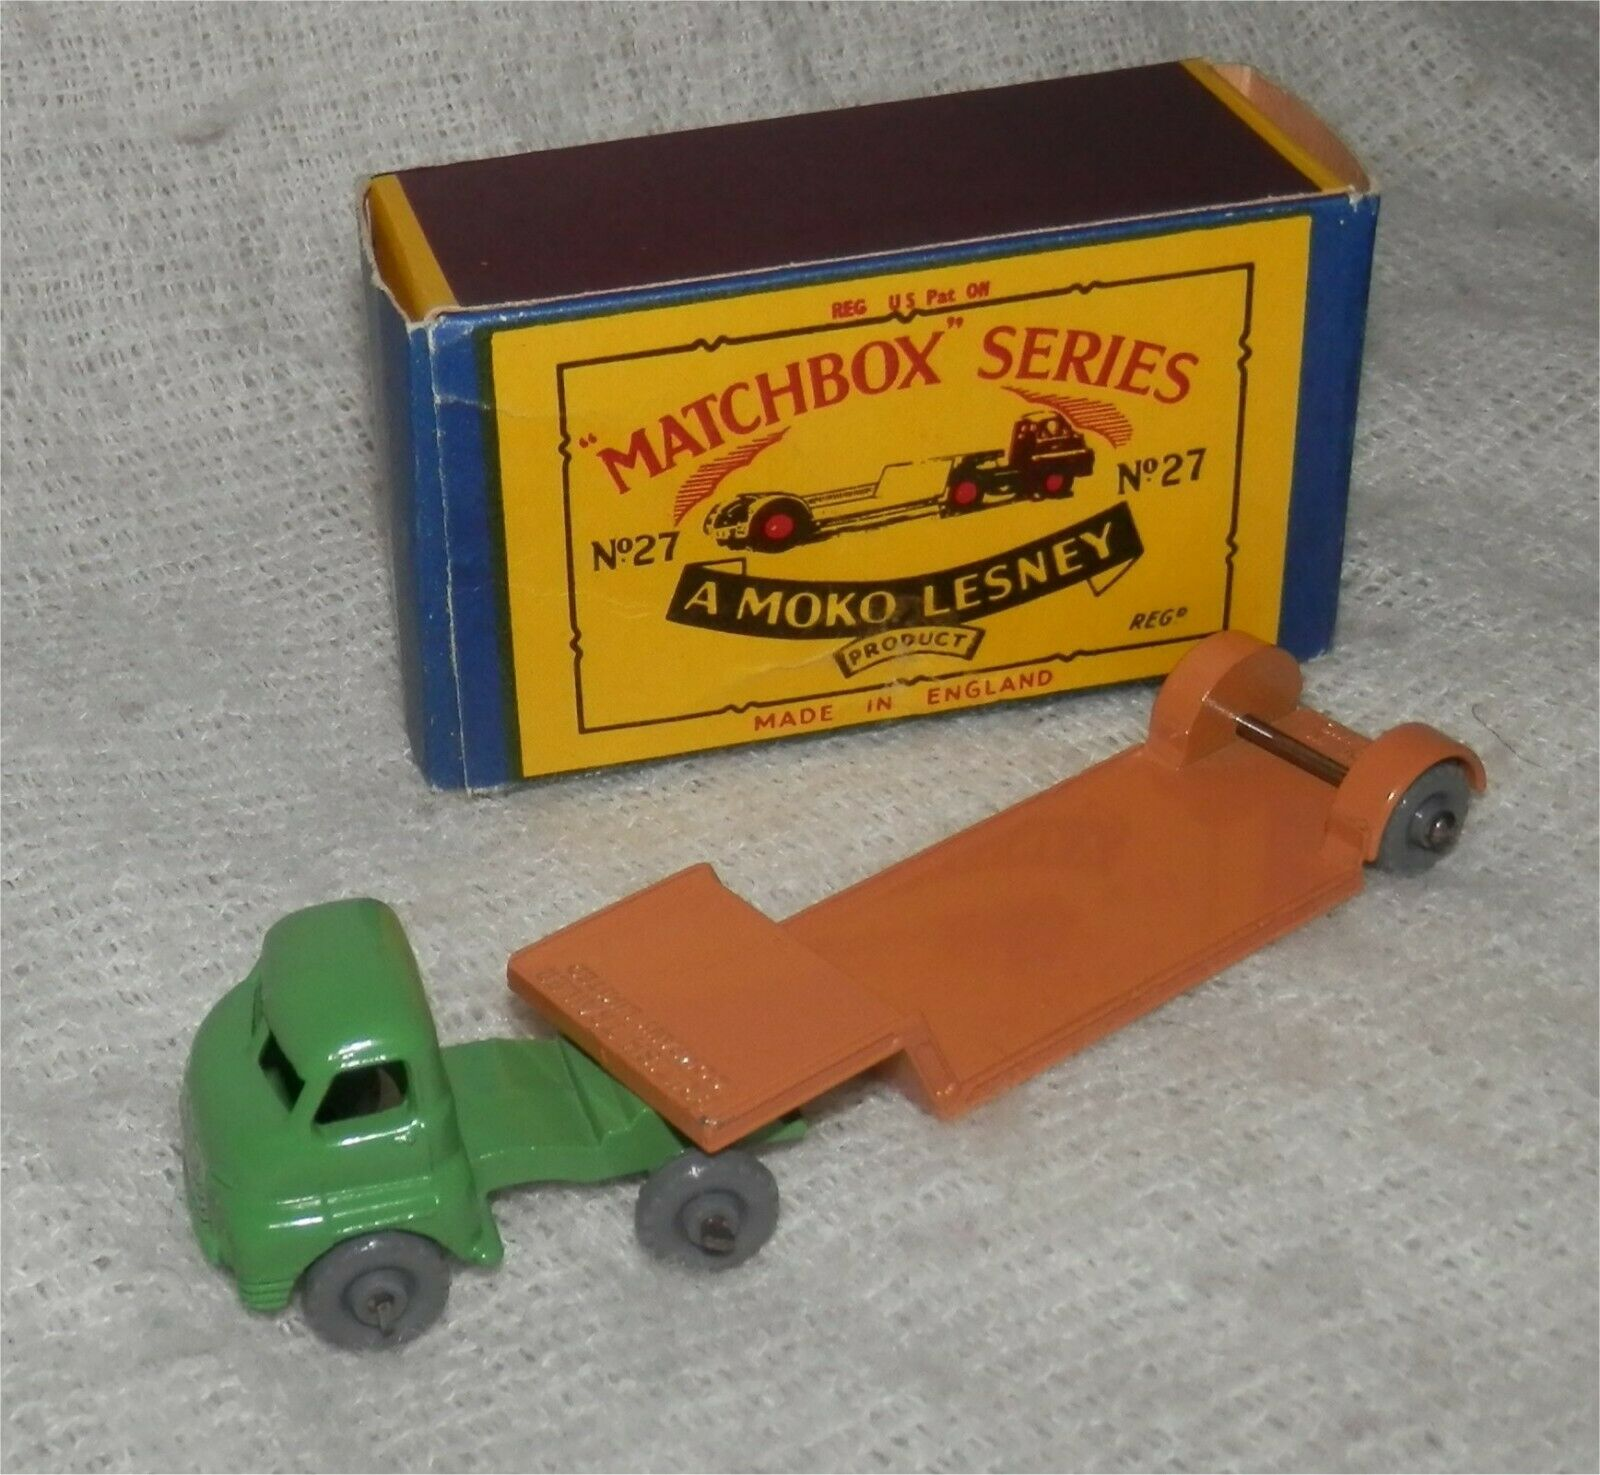 1960s.Matchbox Lesney 27 B Low Loader Larger Model GPW.Mint in box.All original